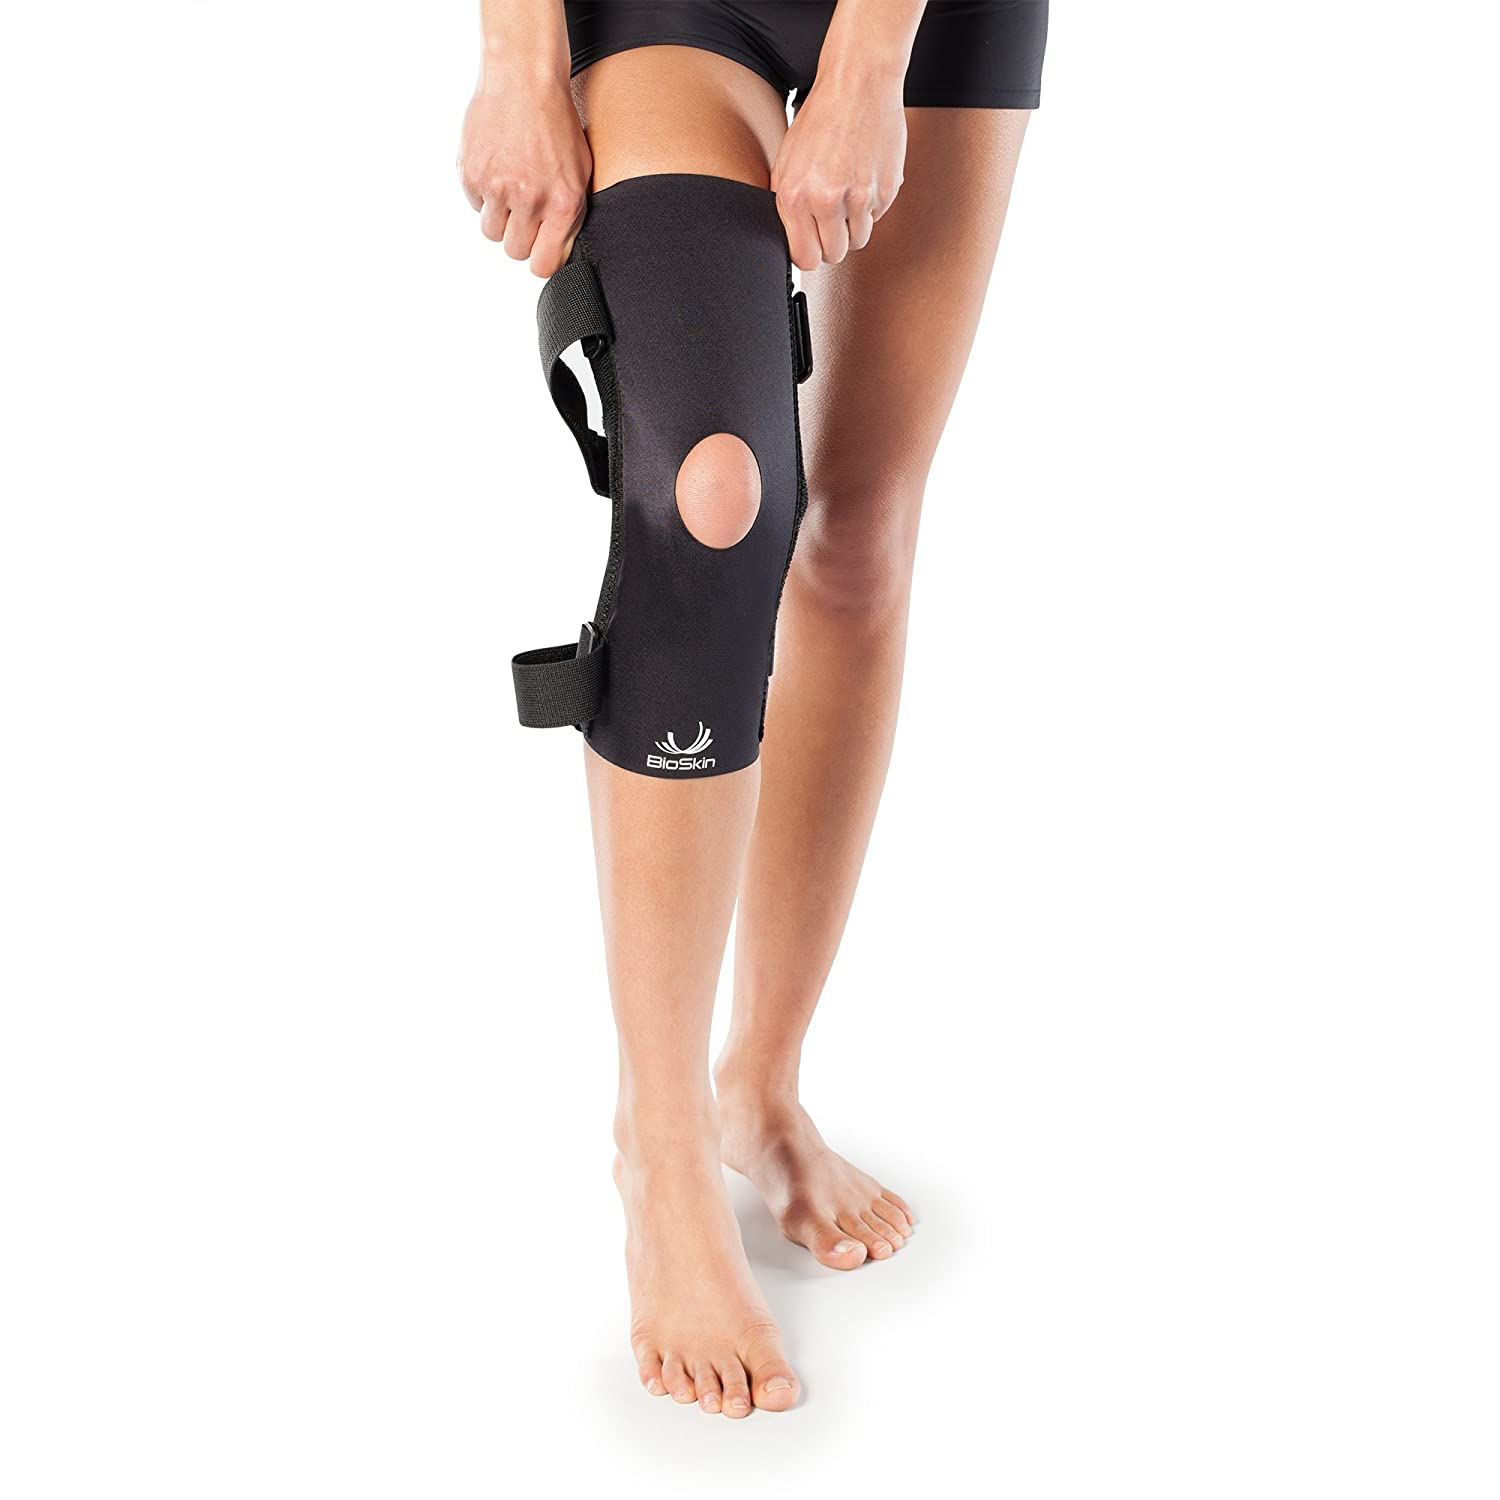 78e96c5fc0 Amazon.com: Wrap Around Compression Supportive Knee Brace for Patellofemoral  Pain and Patella Tracking Disorders - Q Brace by BioSkin (XXL): Health ...